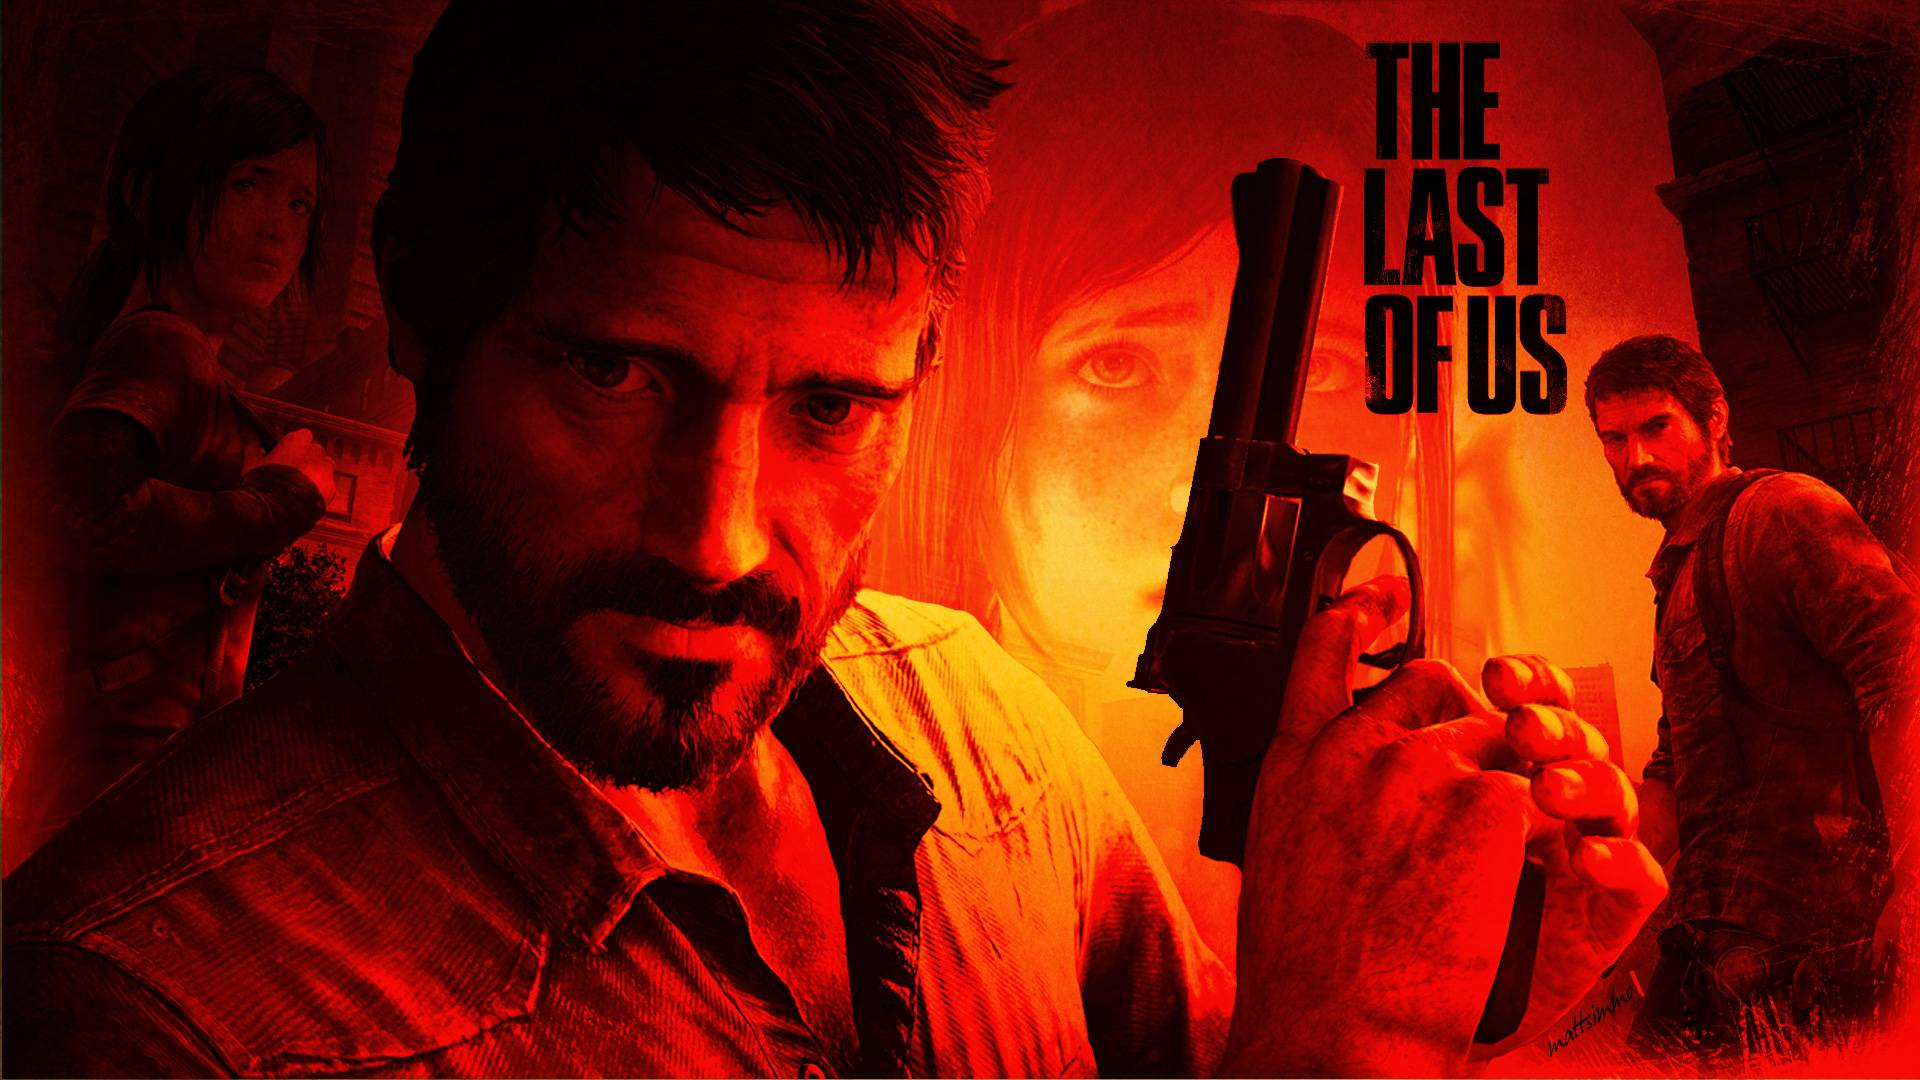 The Last of Us Wallpaper HD Page 2 1920x1080